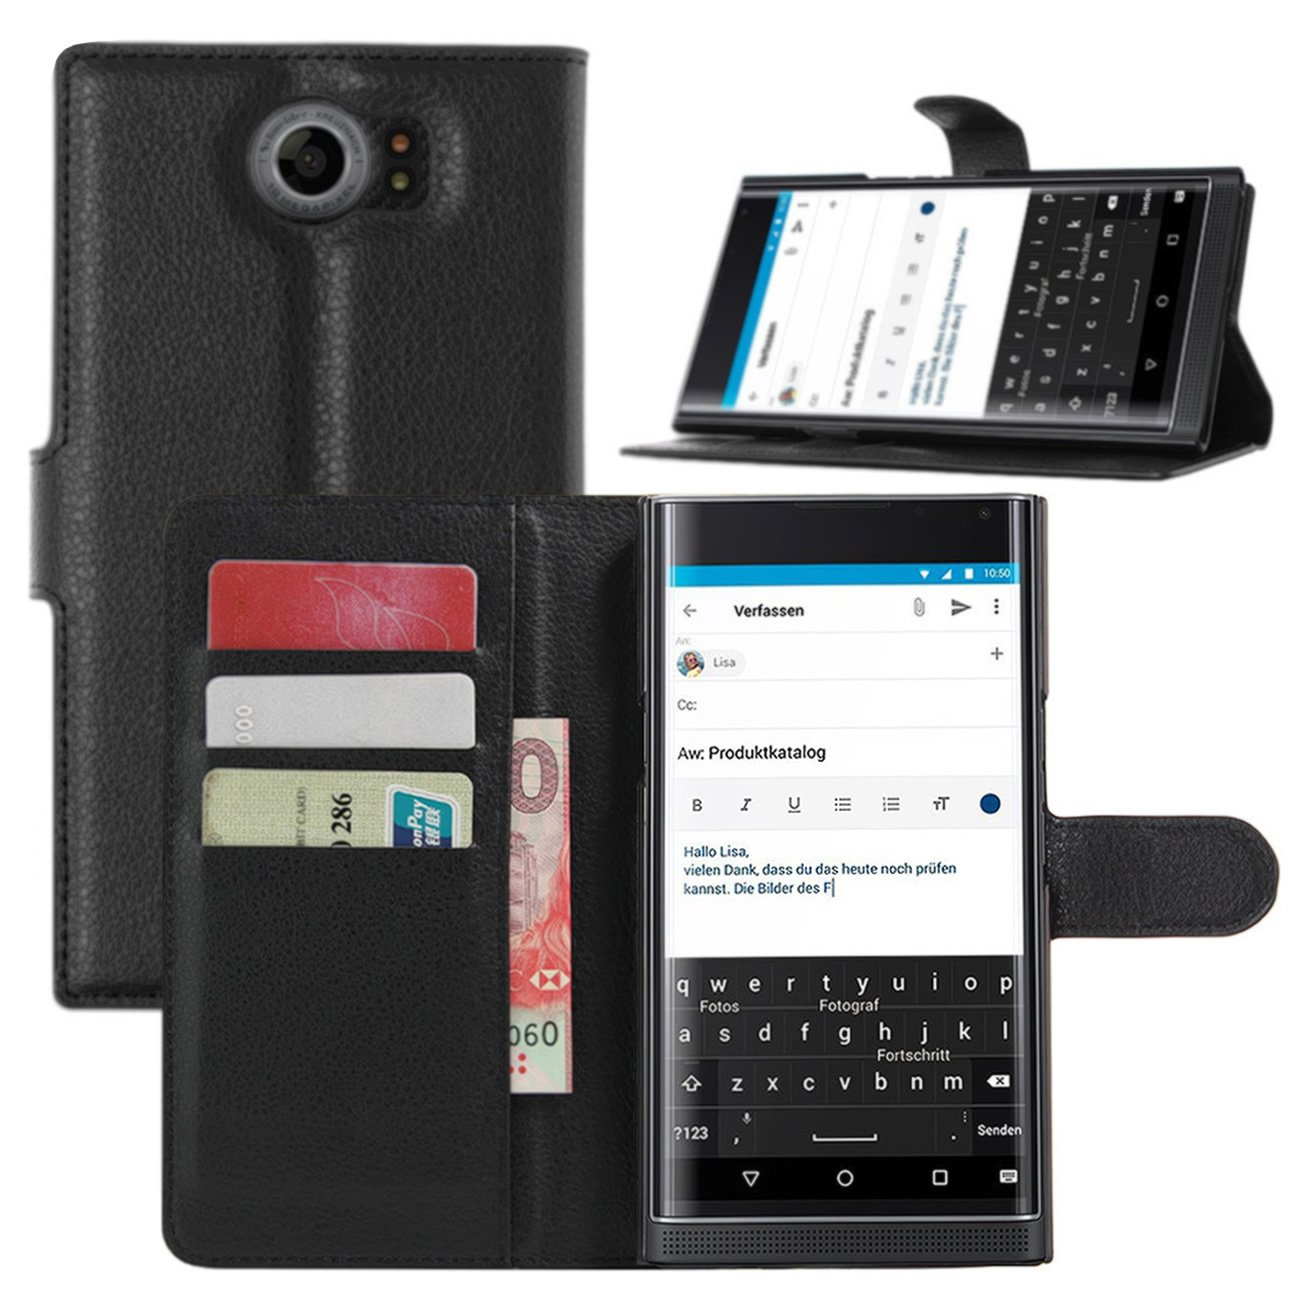 Funda Billteresa Para Blackberry Priv 2015 (negra)